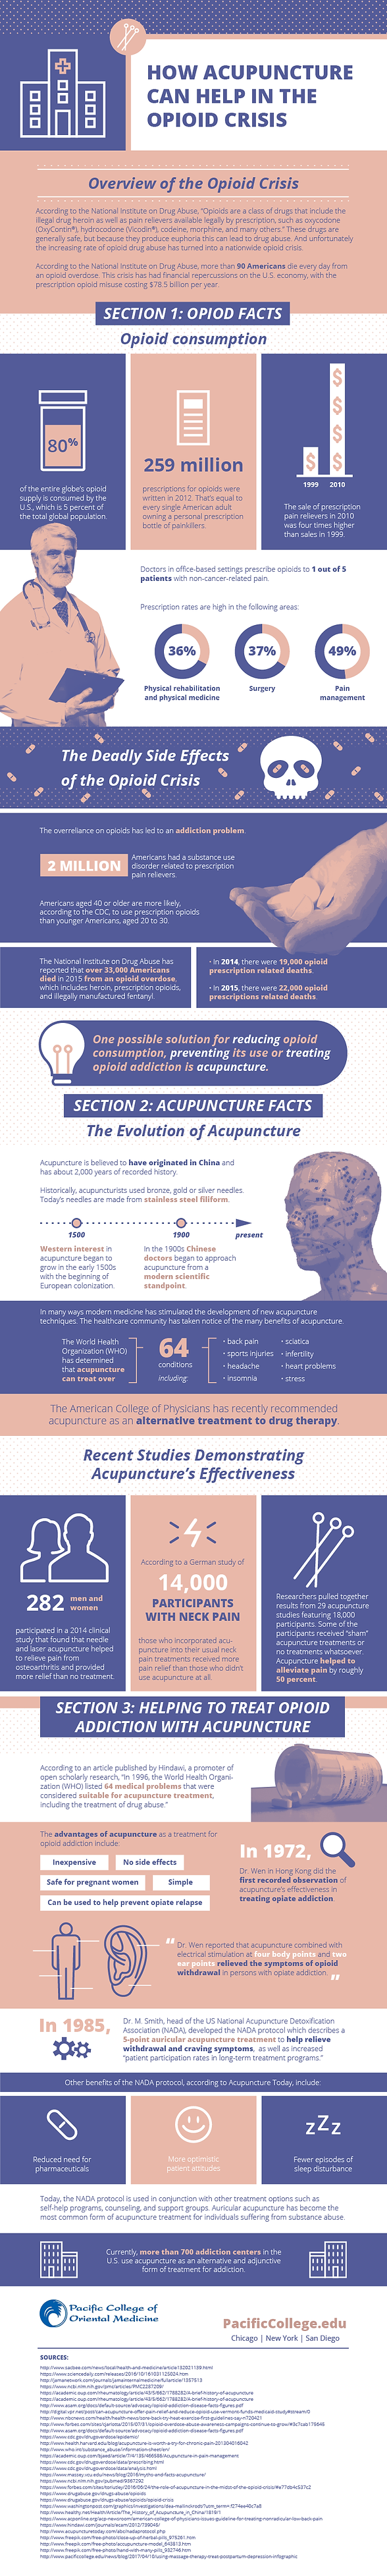 Infographic about acupuncture an the opioid epidemic